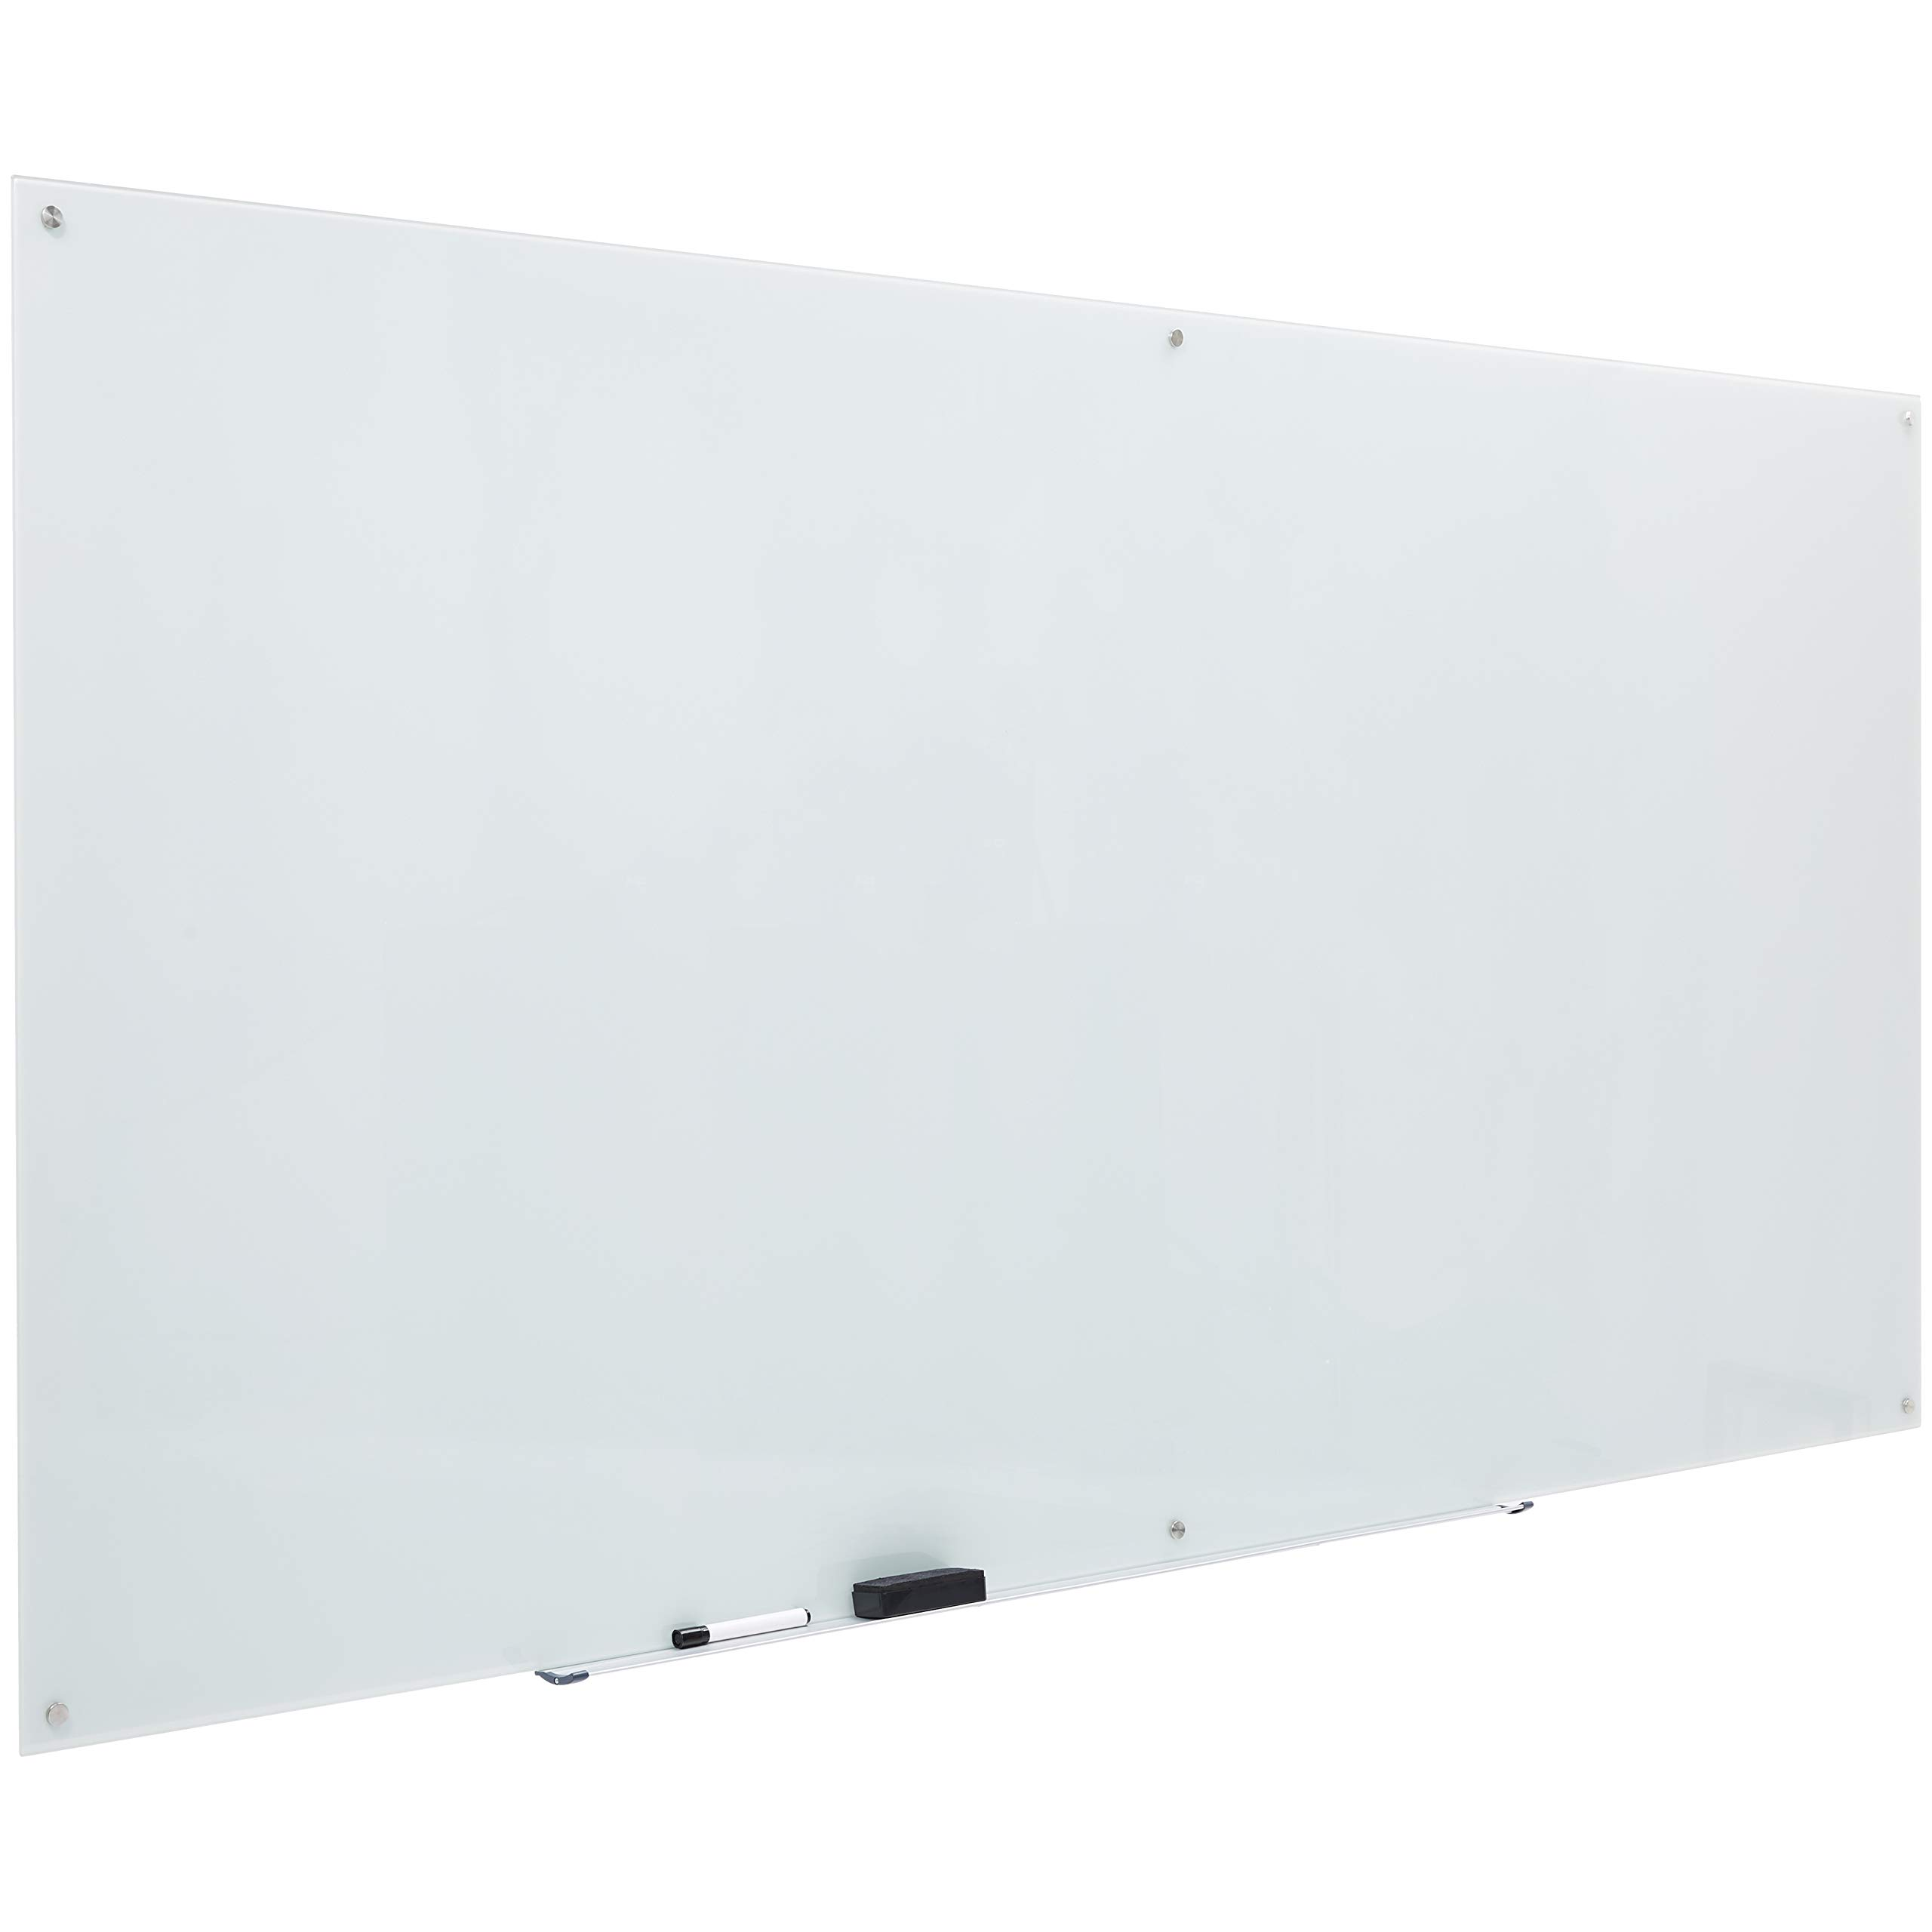 AmazonBasics Glass Dry-Erase Board - White, Magnetic, 8' x 4'